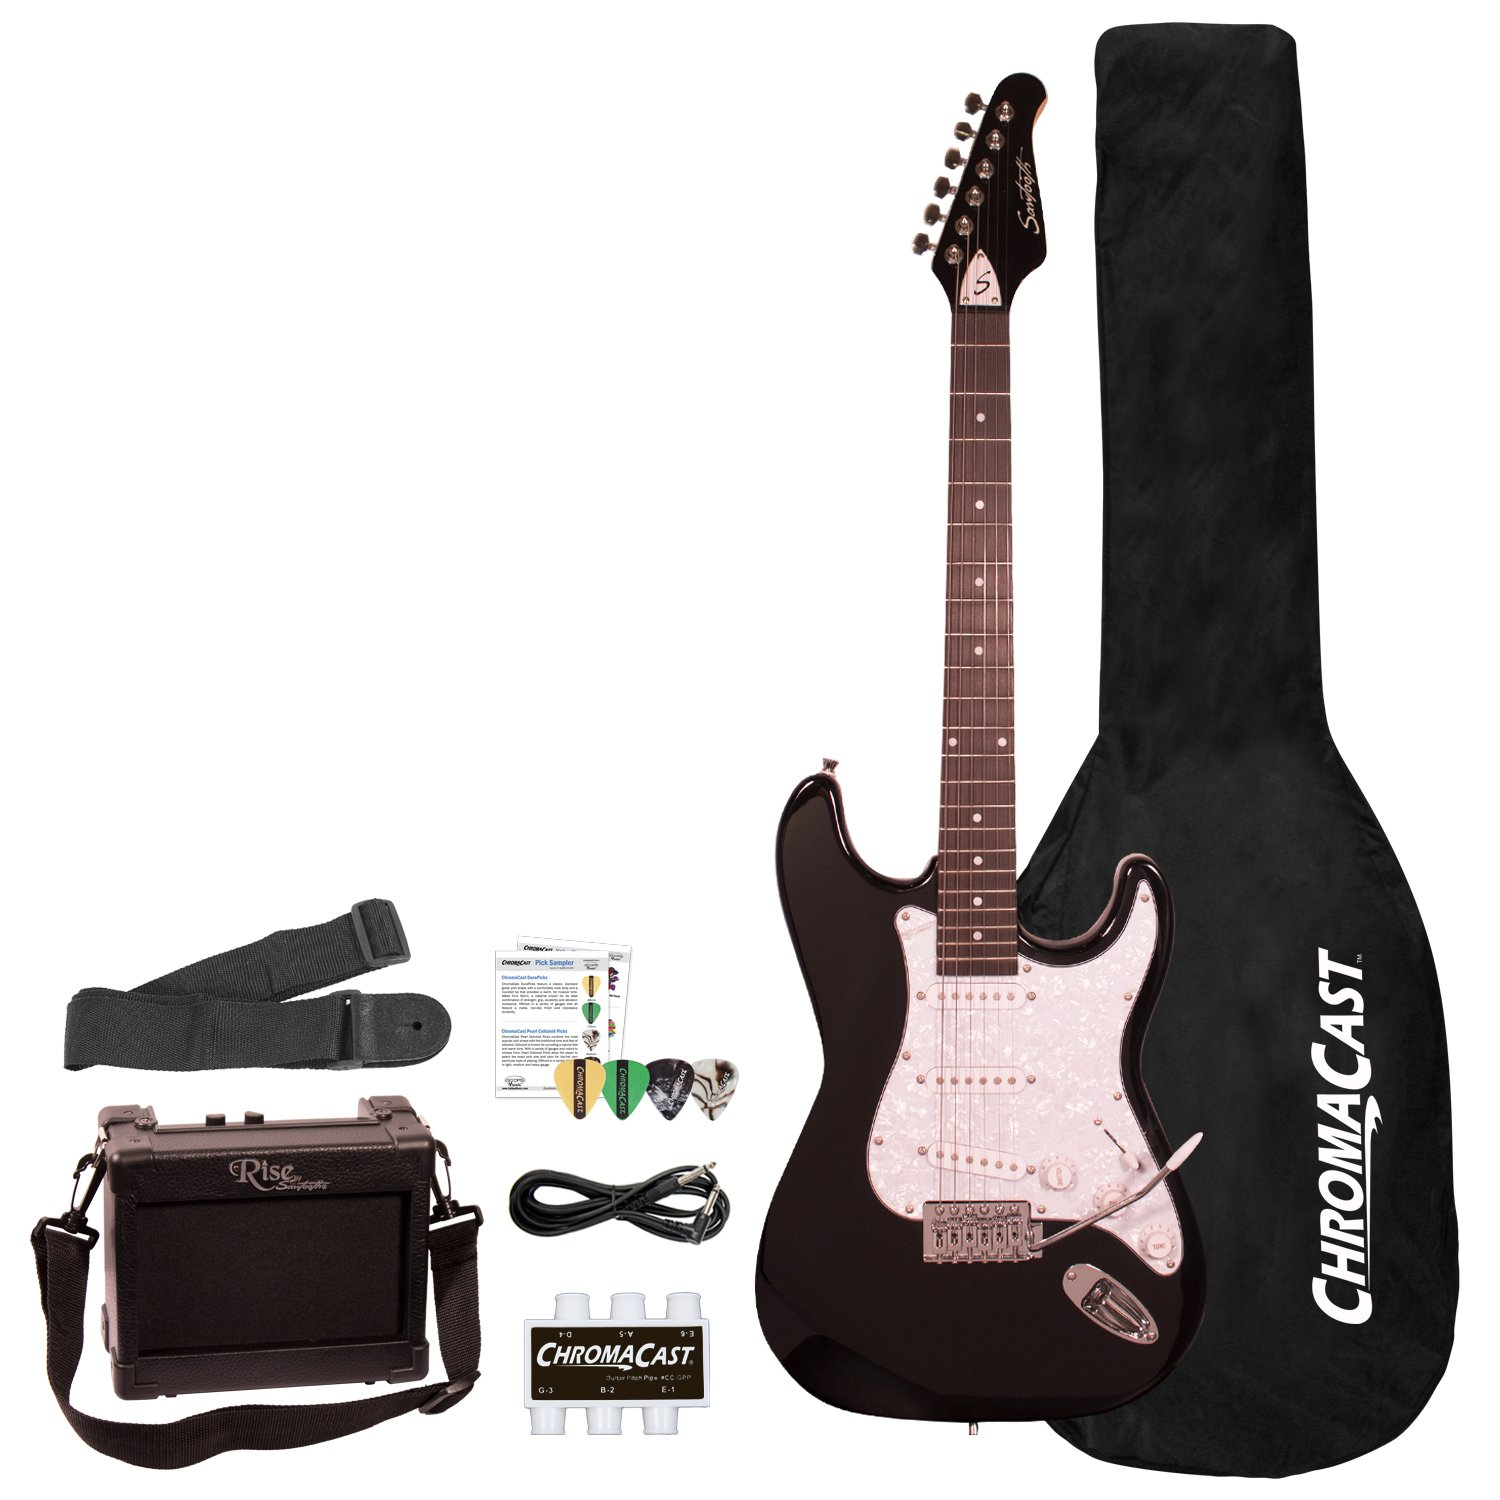 Sawtooth ST-ES-FBRC-BEG ES Series ST Style Electric Guitar Beginner's Pack, Fire Brick Red with Chrome Pickguard